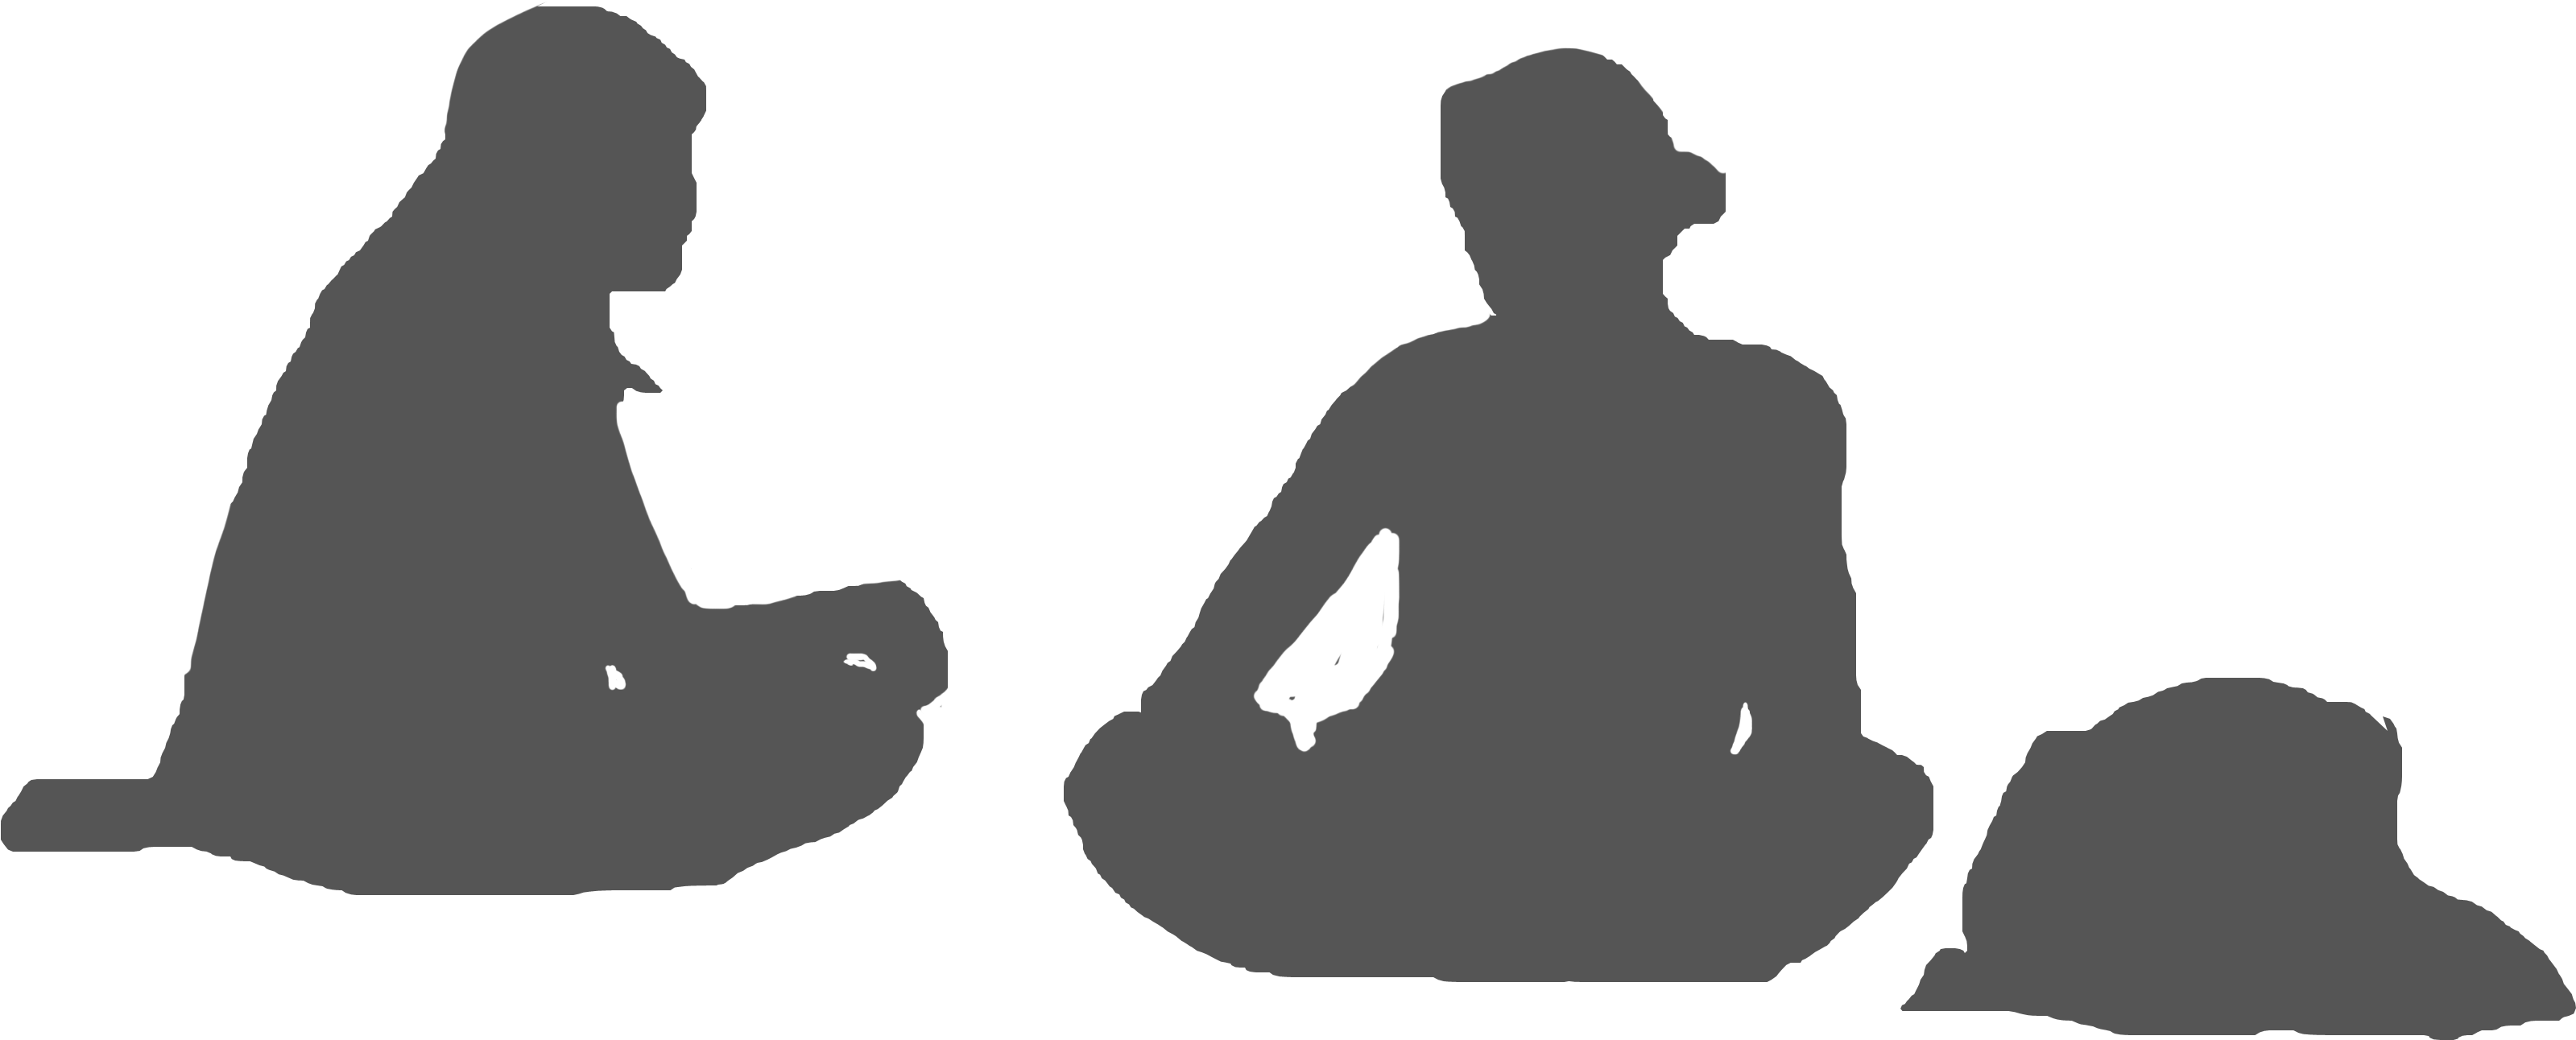 Download Human Silhouette Sitting Png Human Silhouette Png Photoshop Png Image With No Background Pngkey Com Find & download free graphic resources for human silhouette. download human silhouette sitting png